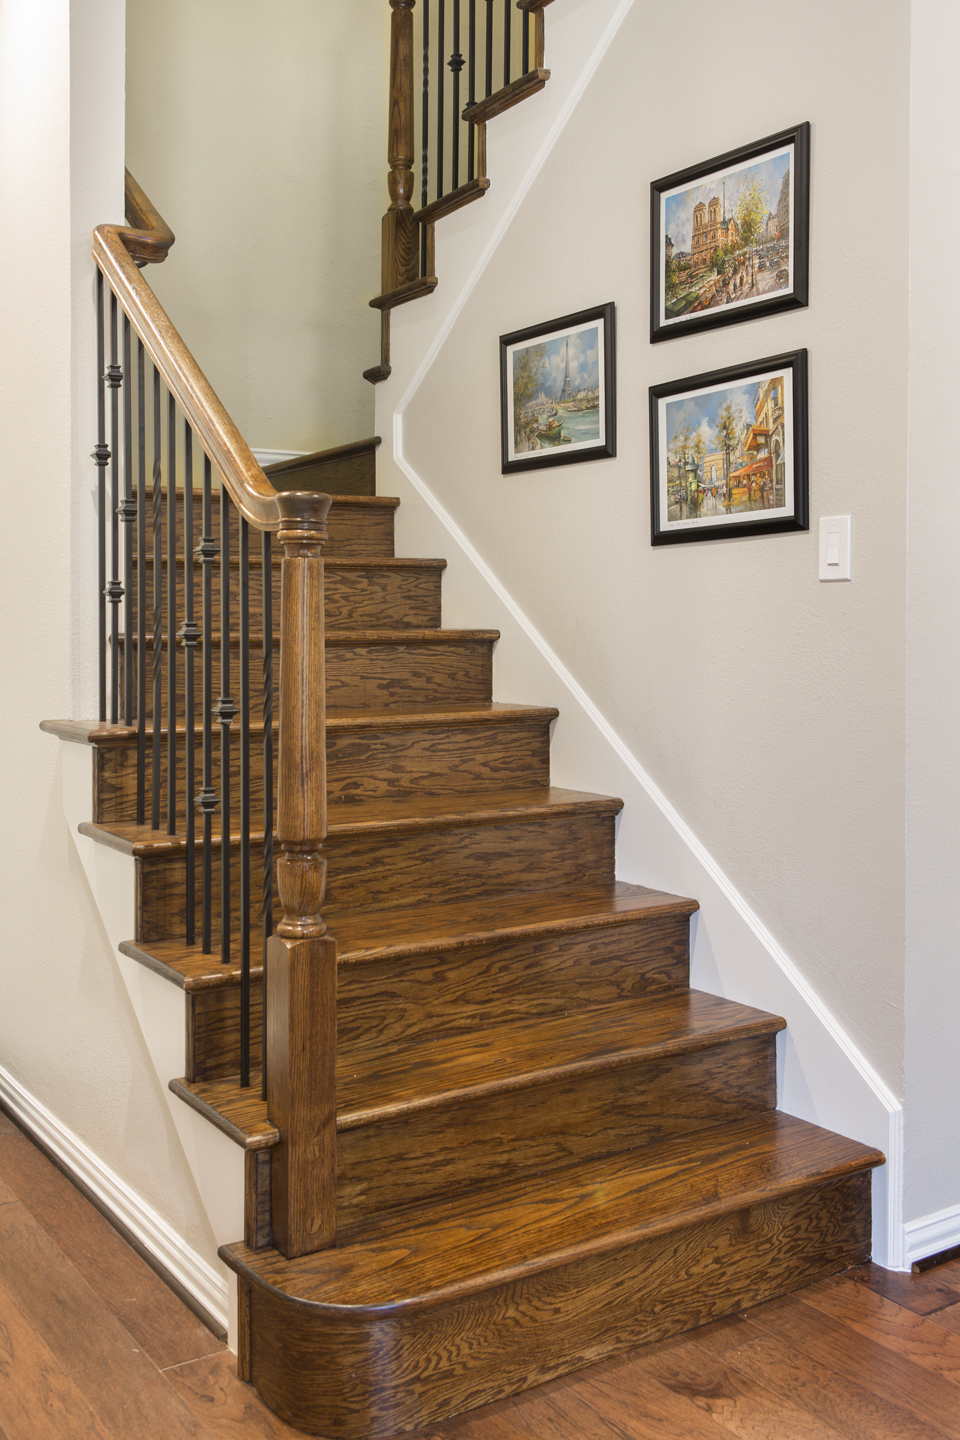 Remodeled staircase with decorative railing.